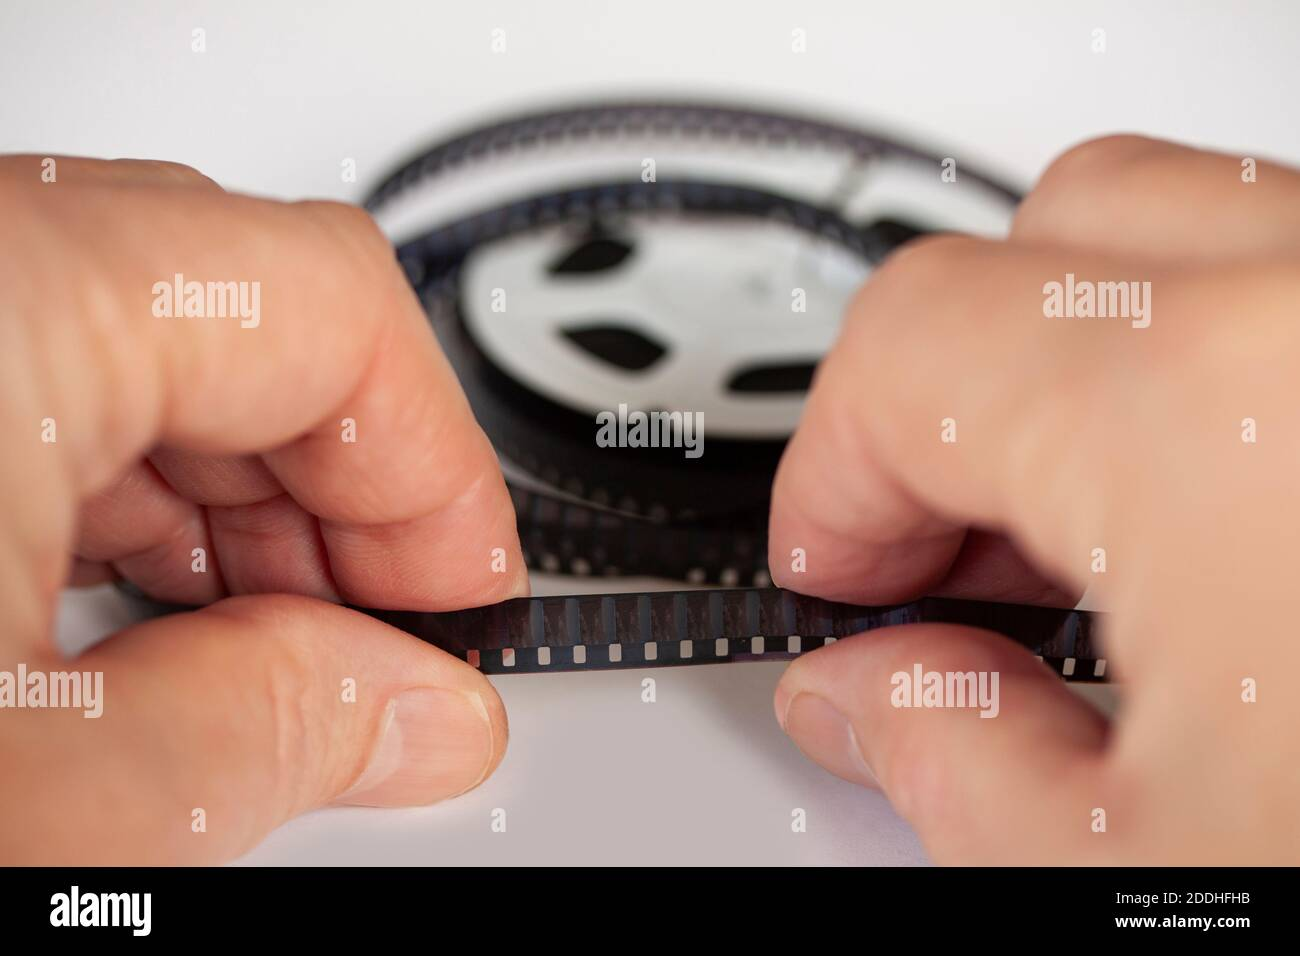 Hands holding a 8mm film strip with roll in background. Close up image with shallow depth of field. Stock Photo